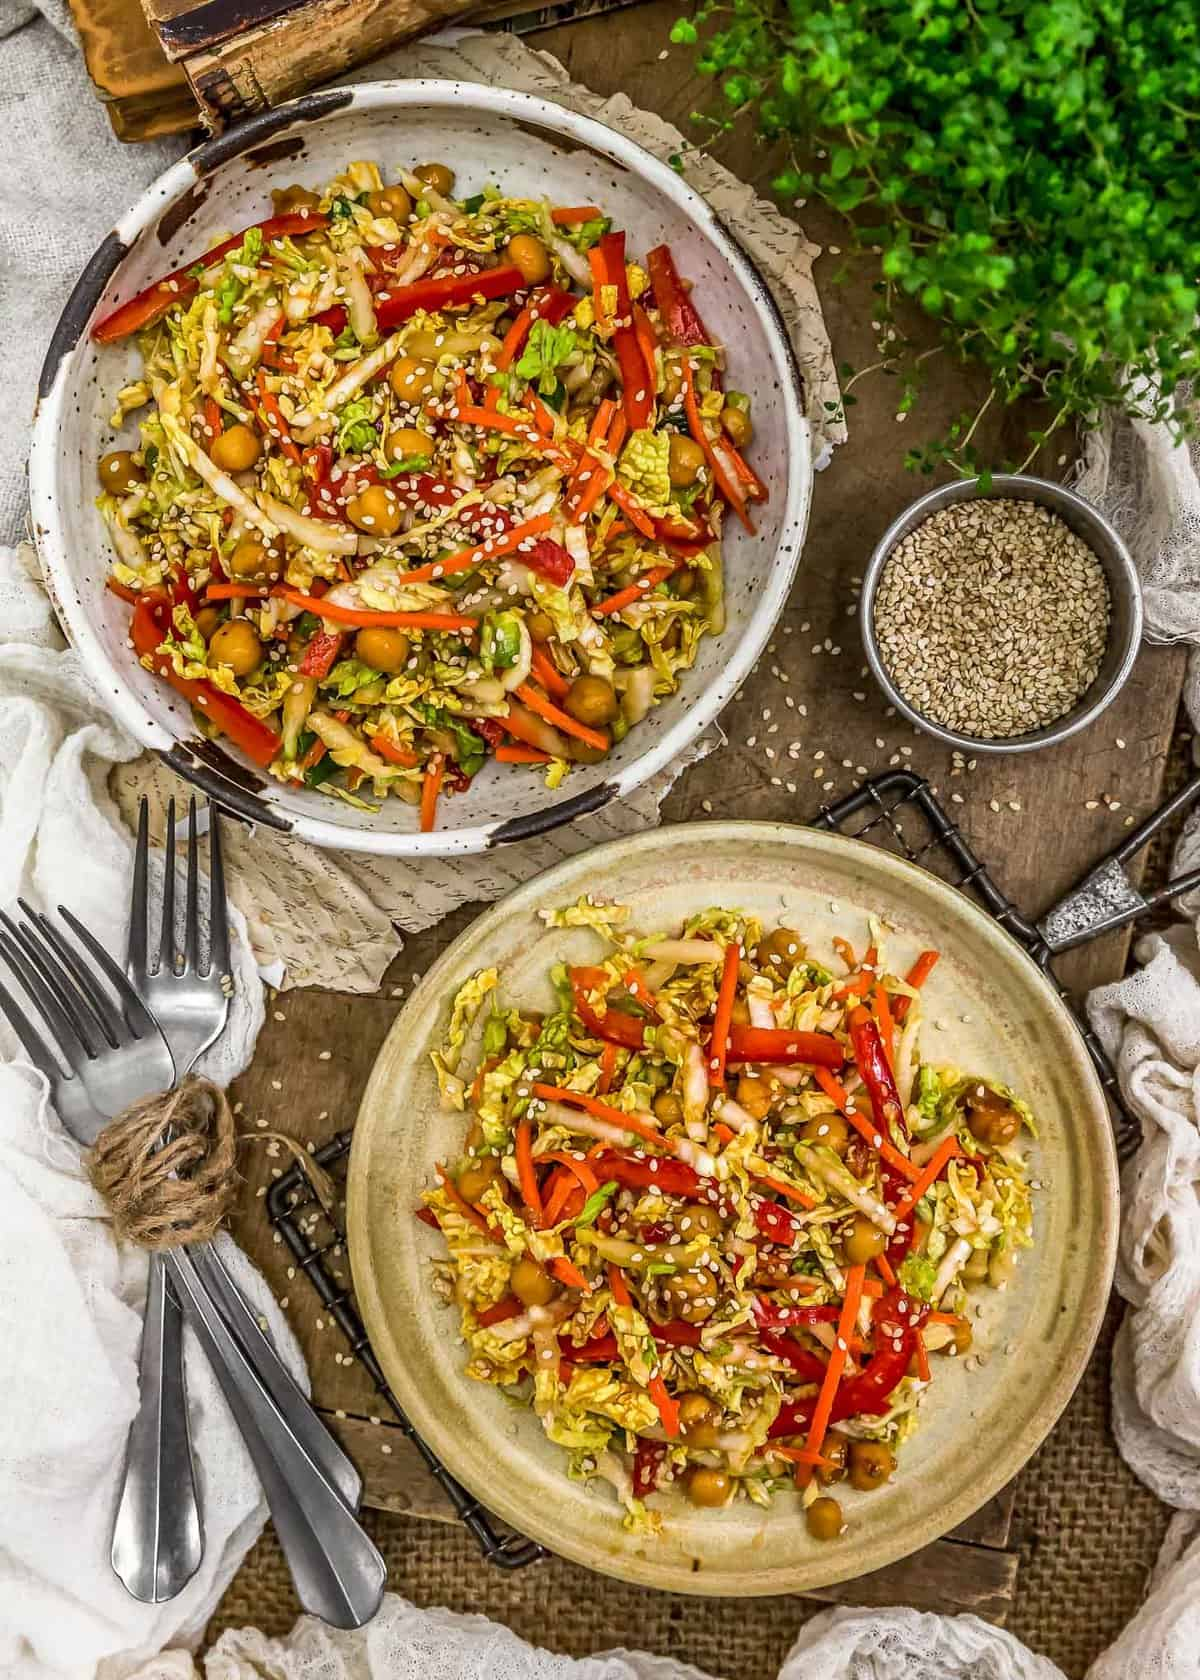 Tablescape of Spicy Glazed Chickpea Napa Cabbage Salad